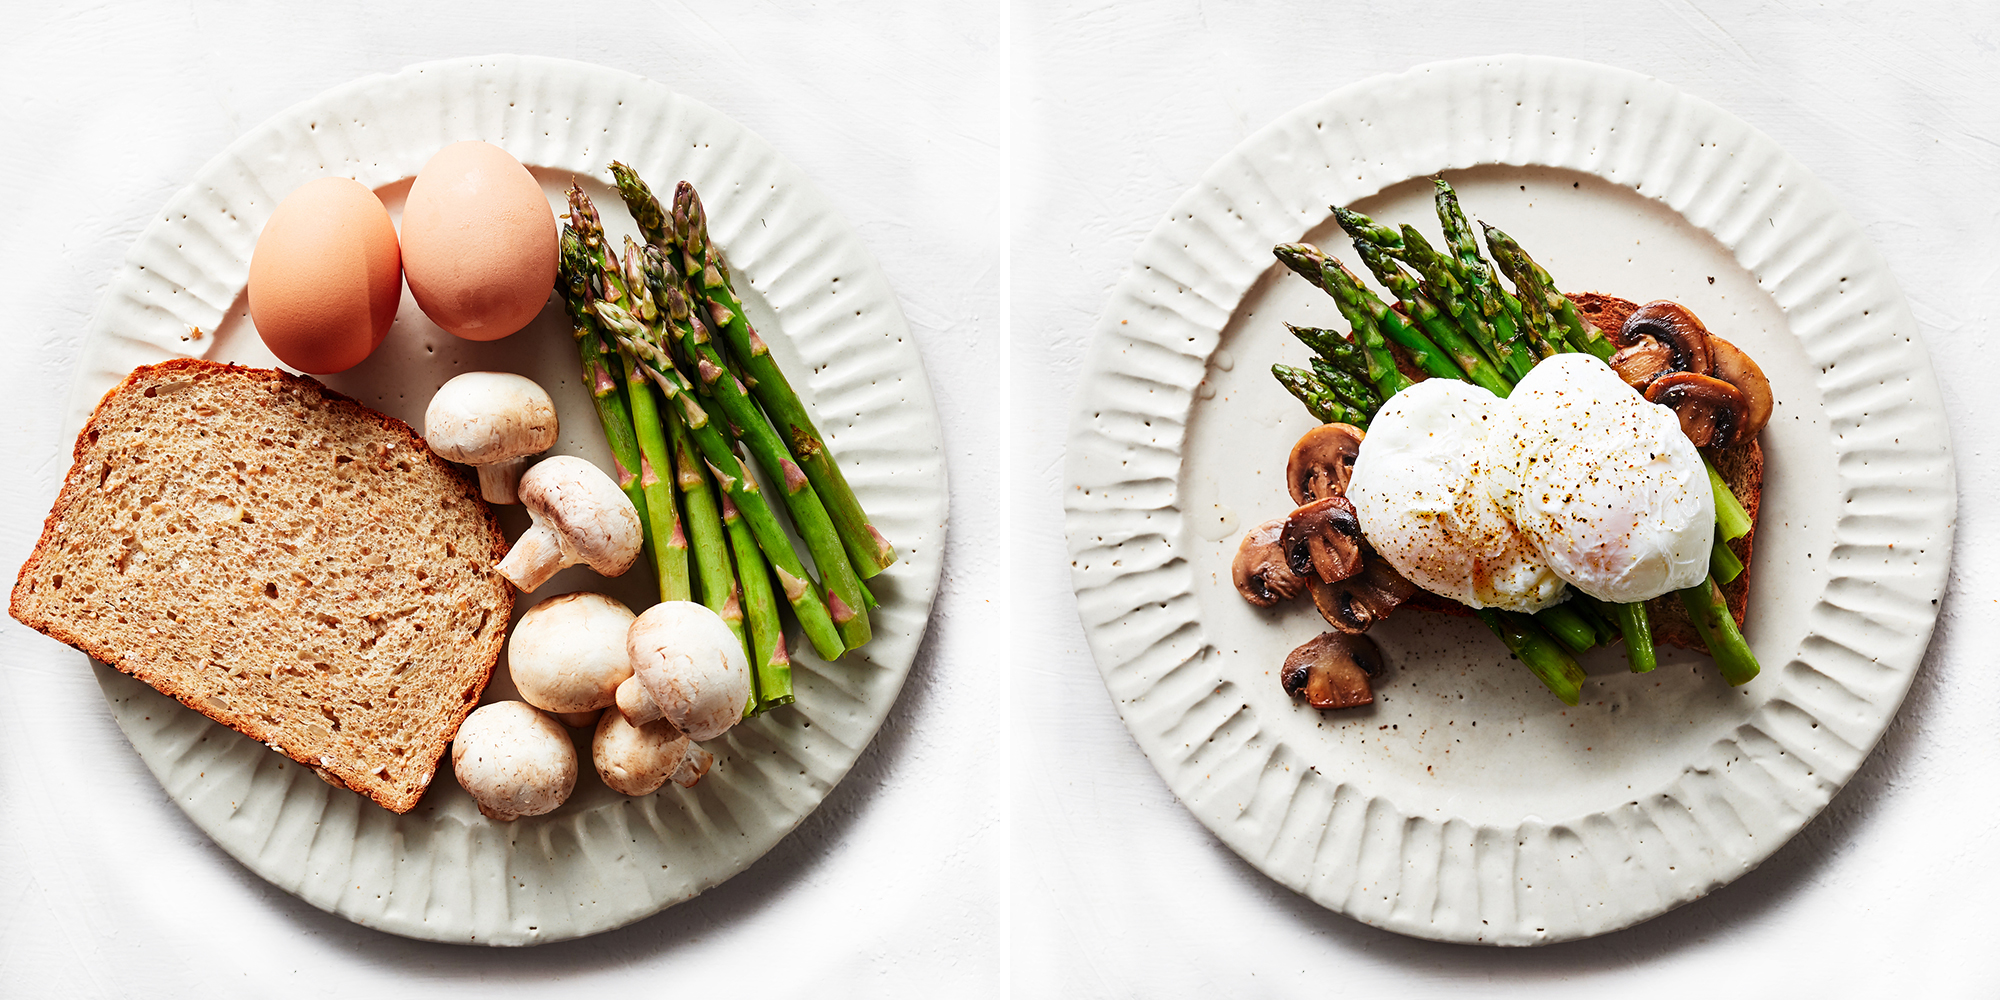 Poached Eggs With Asparagus and Mushrooms